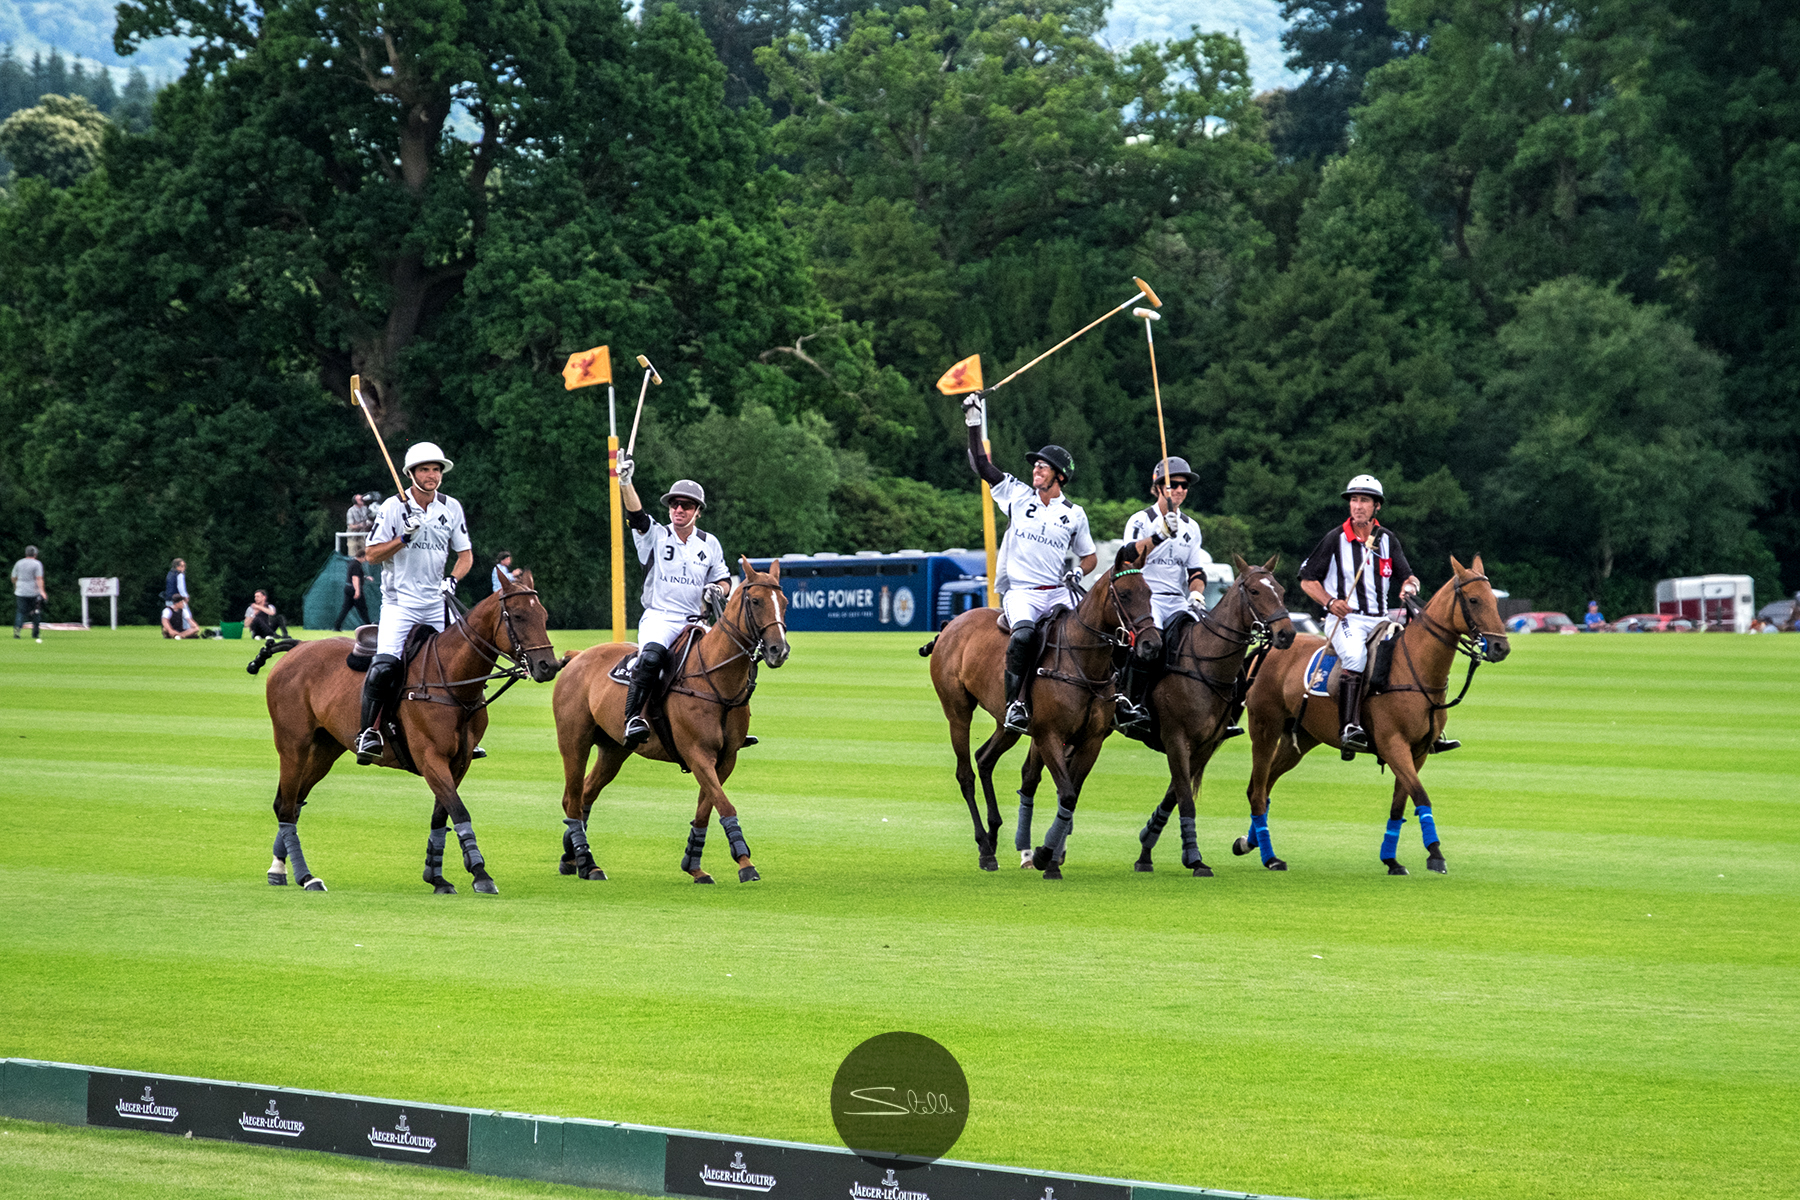 Stella Scordellis Jaeger-LeCoultre Gold Cup 2016 14 Watermarked.jpg